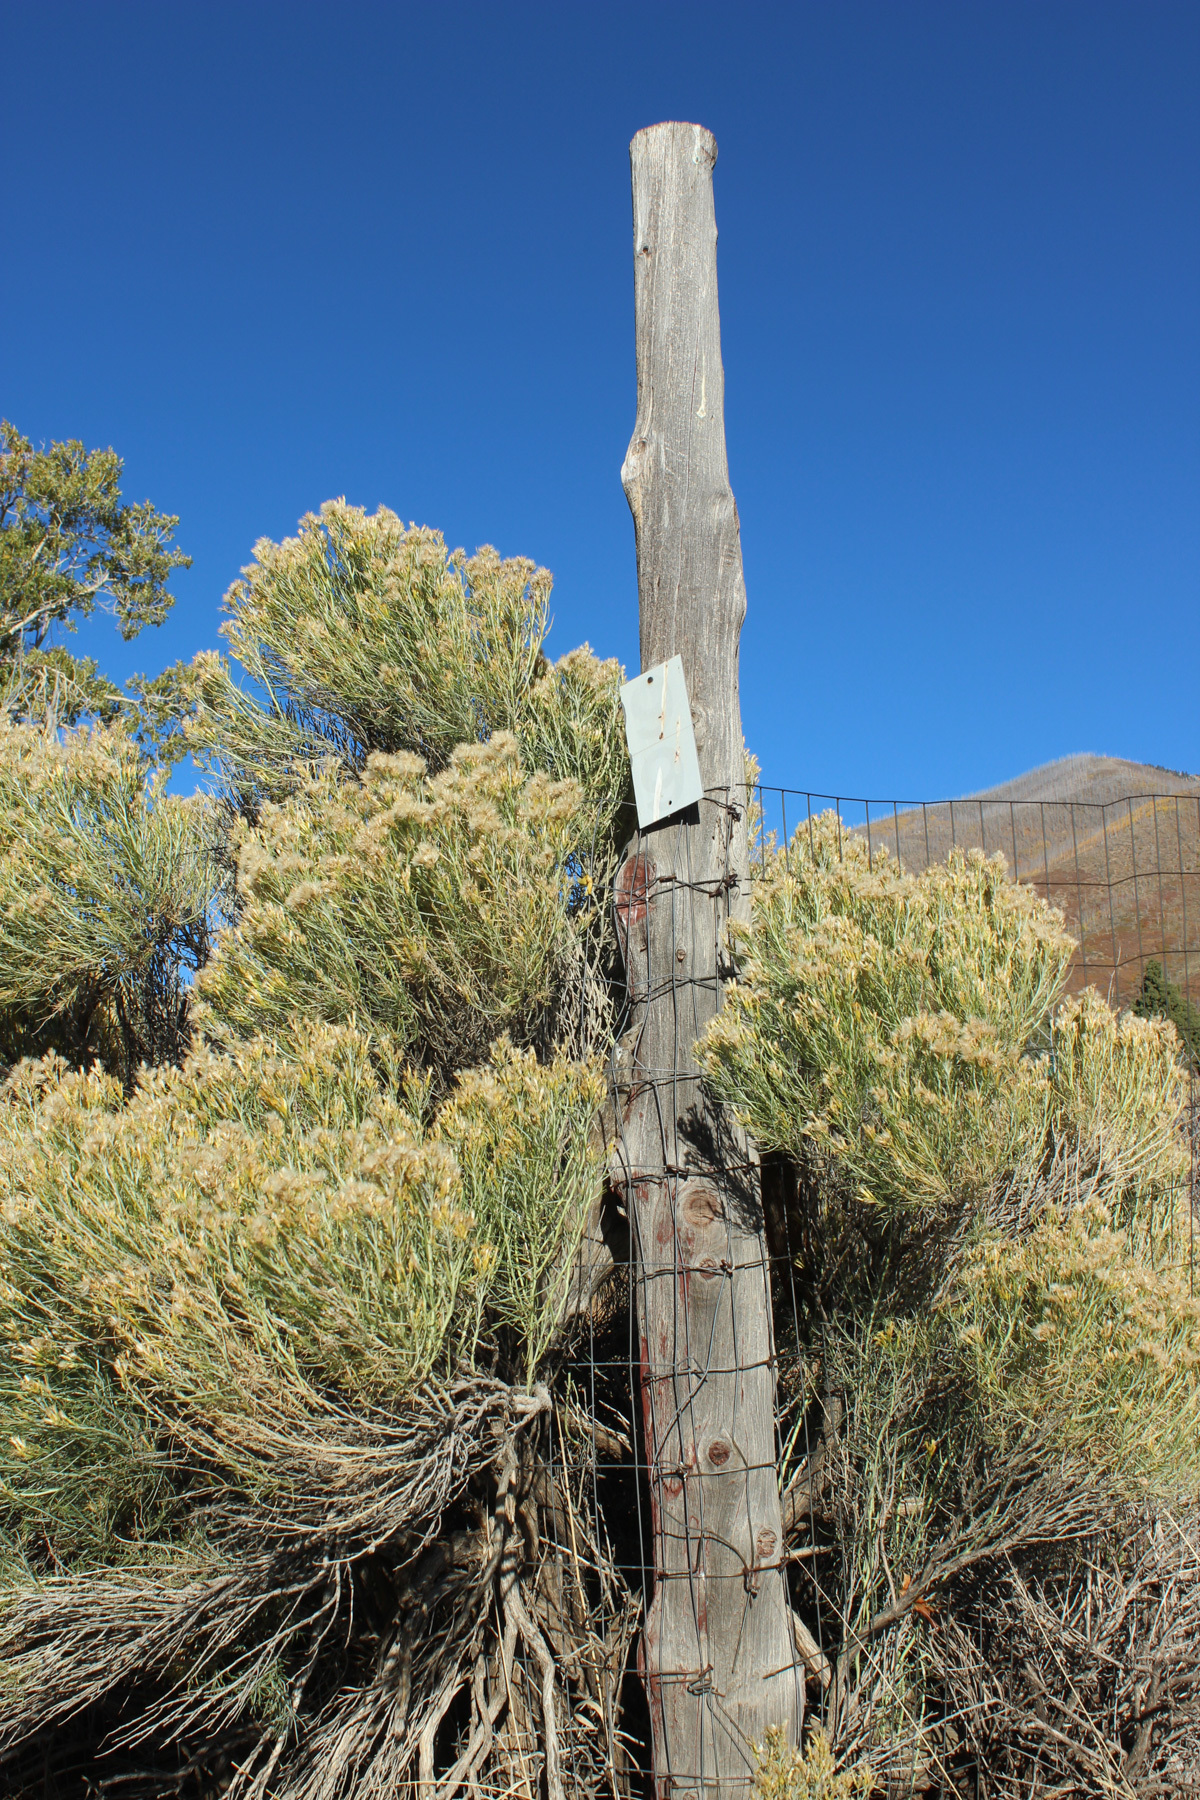 An image of a bare tree stump surrounded by desert vegetation on a cloudless day